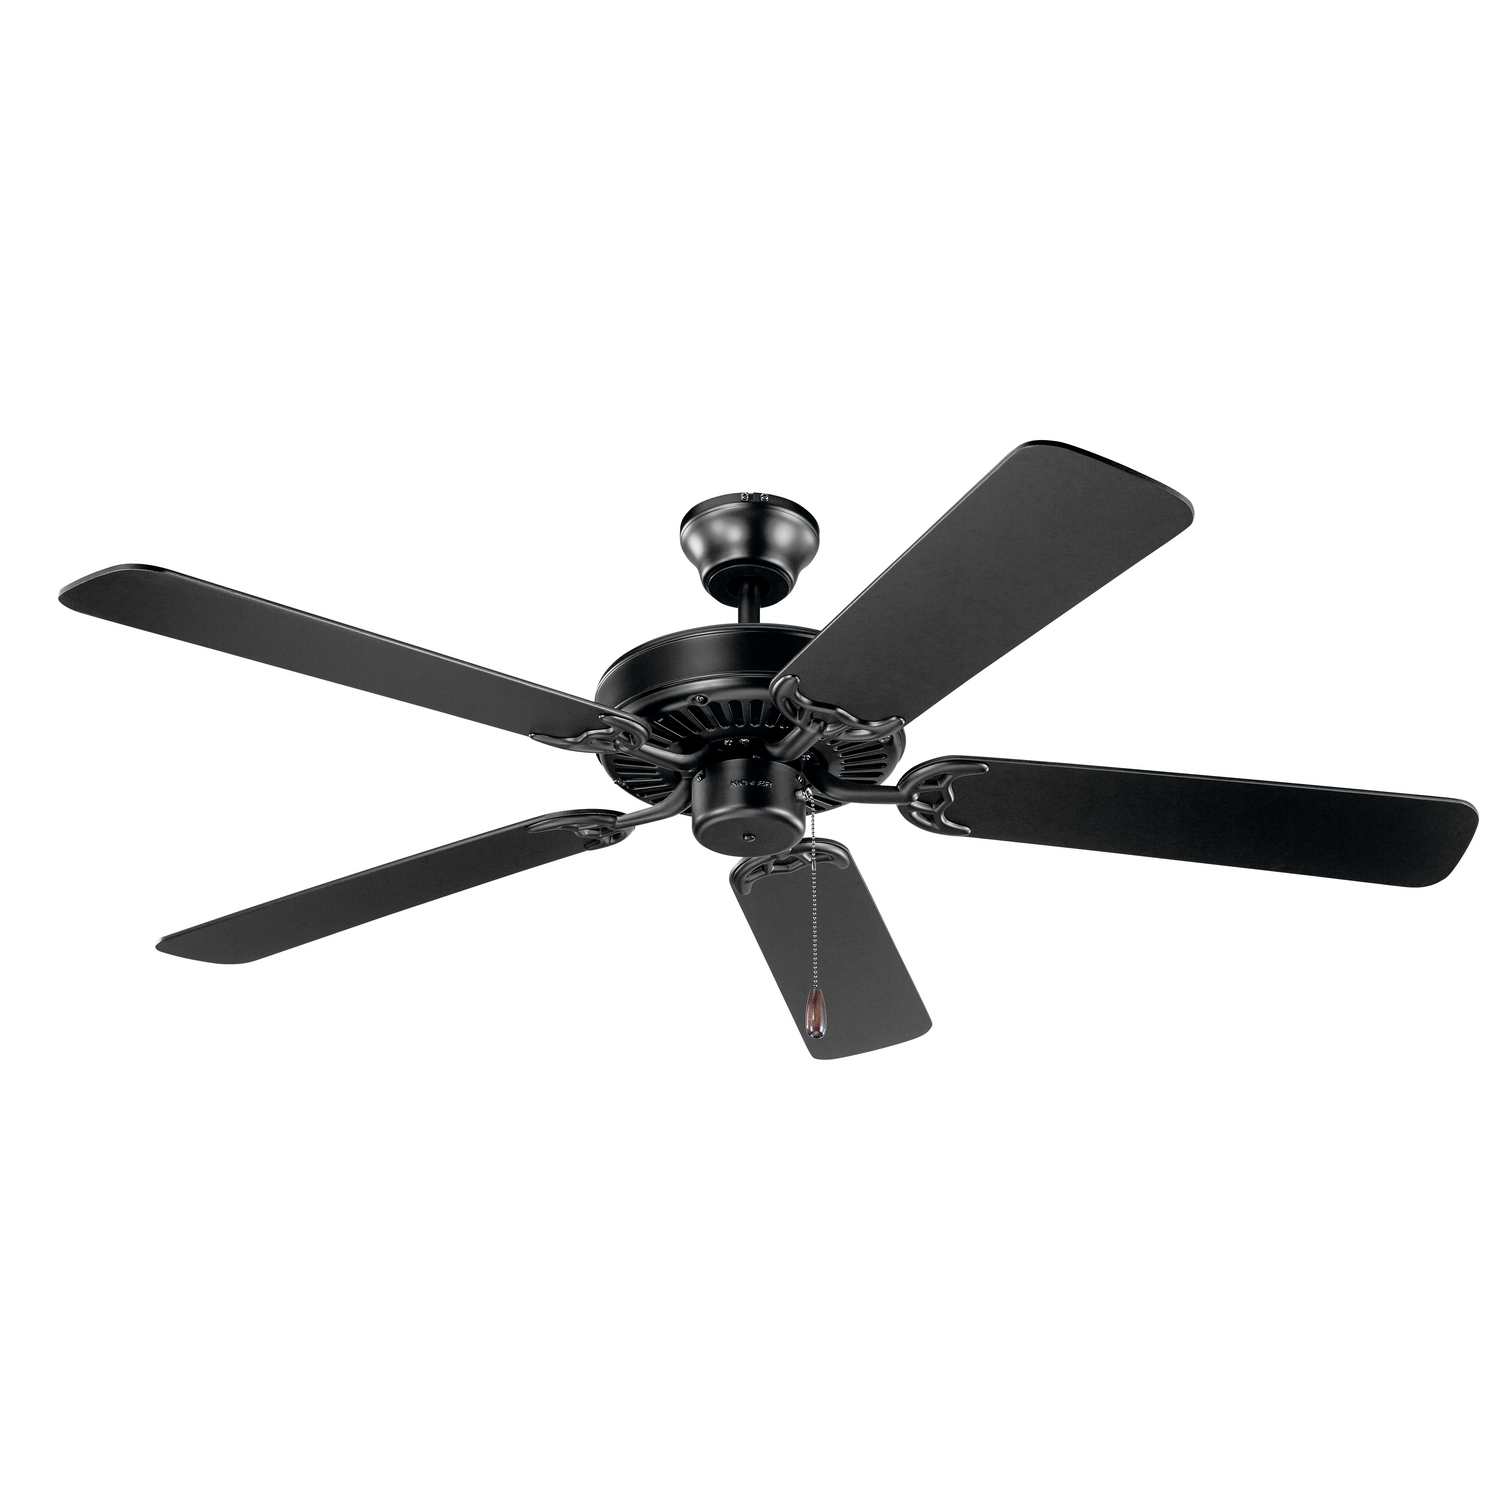 52 inchCeiling Fan from the Basics collection by Kichler 404SBK